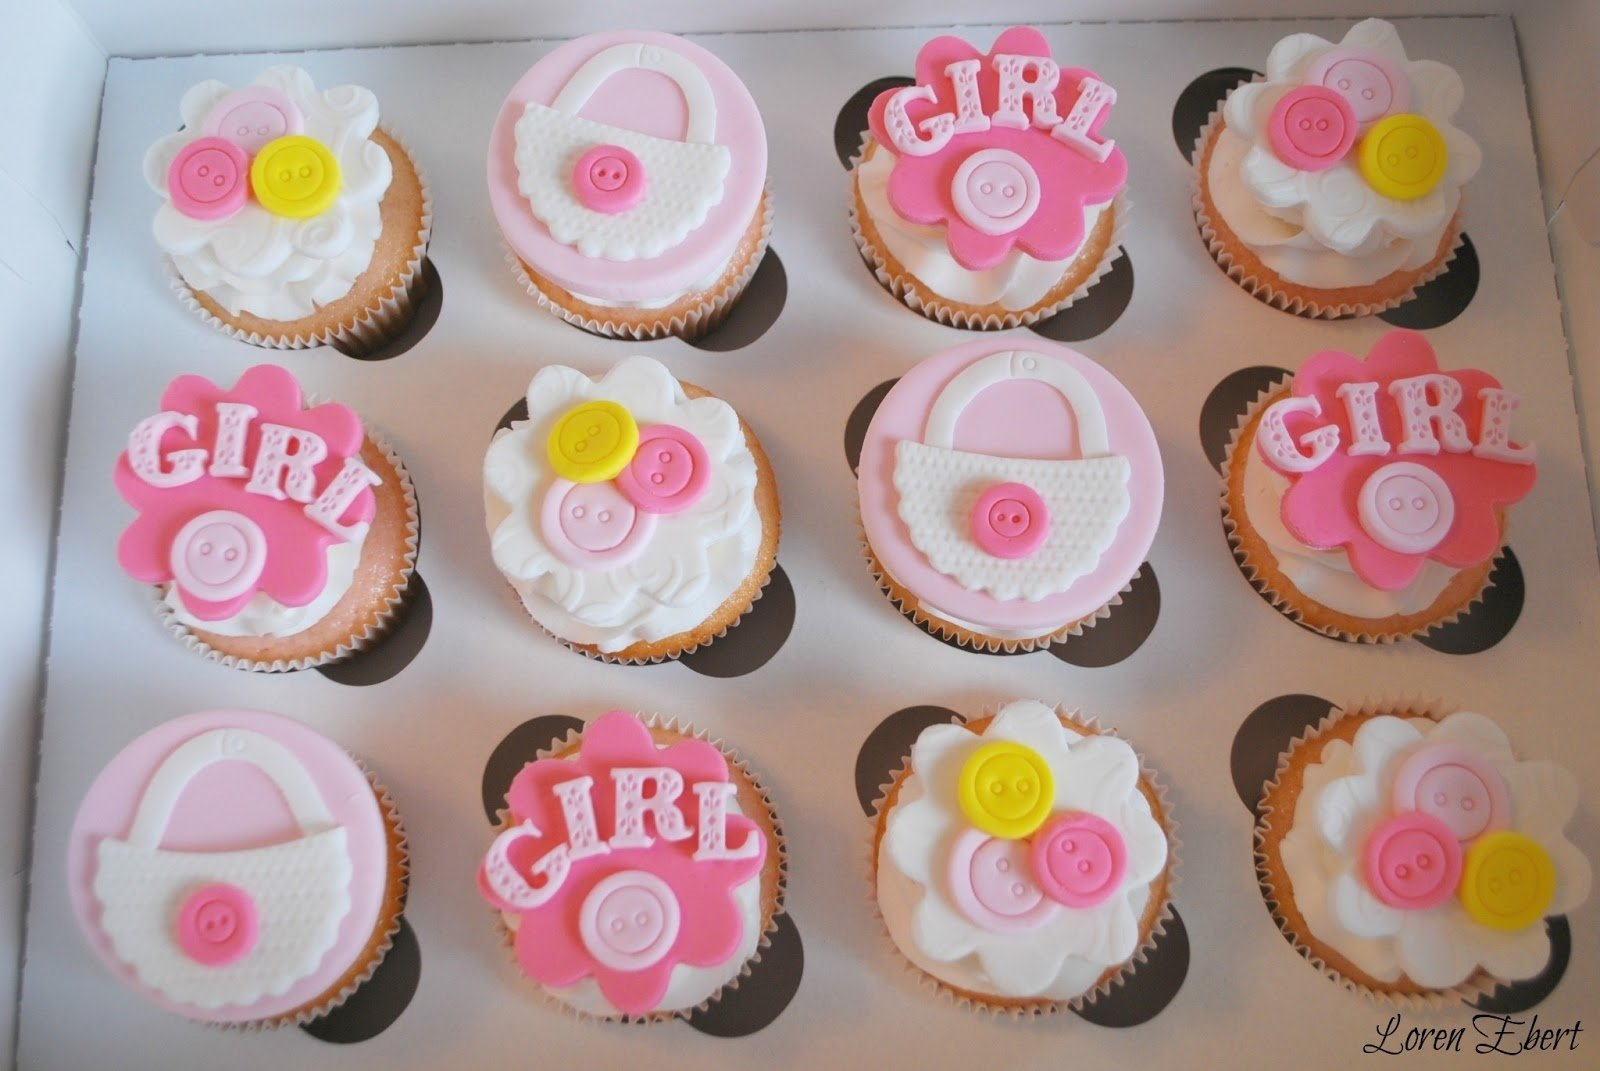 10 Perfect Girl Baby Shower Cupcake Ideas pink baby shower cupcakes google search cupcakes pinterest 2021